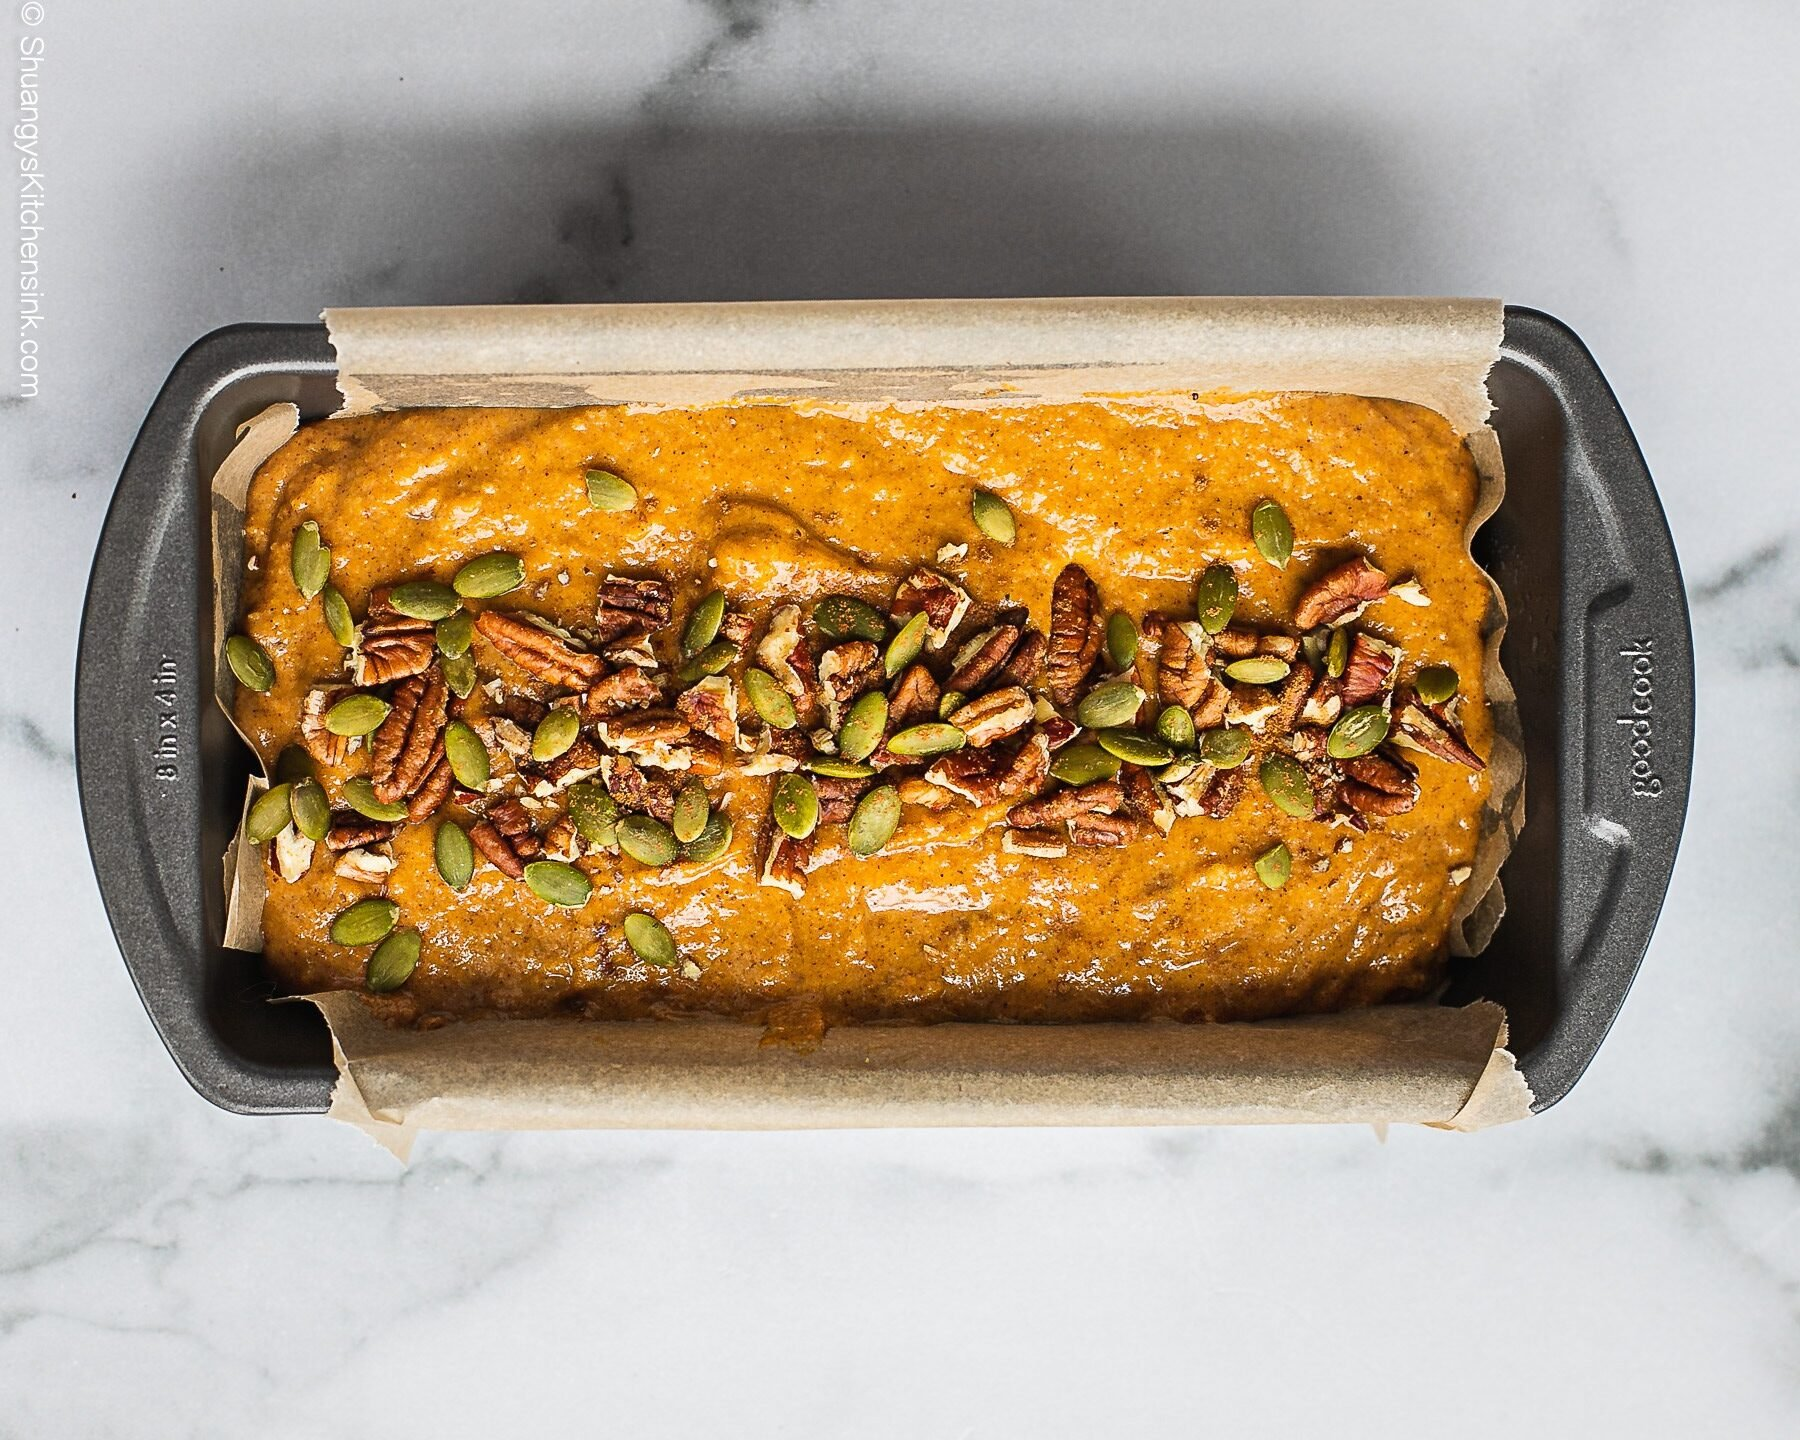 Instructions on how to make sweet potato bread step by step.